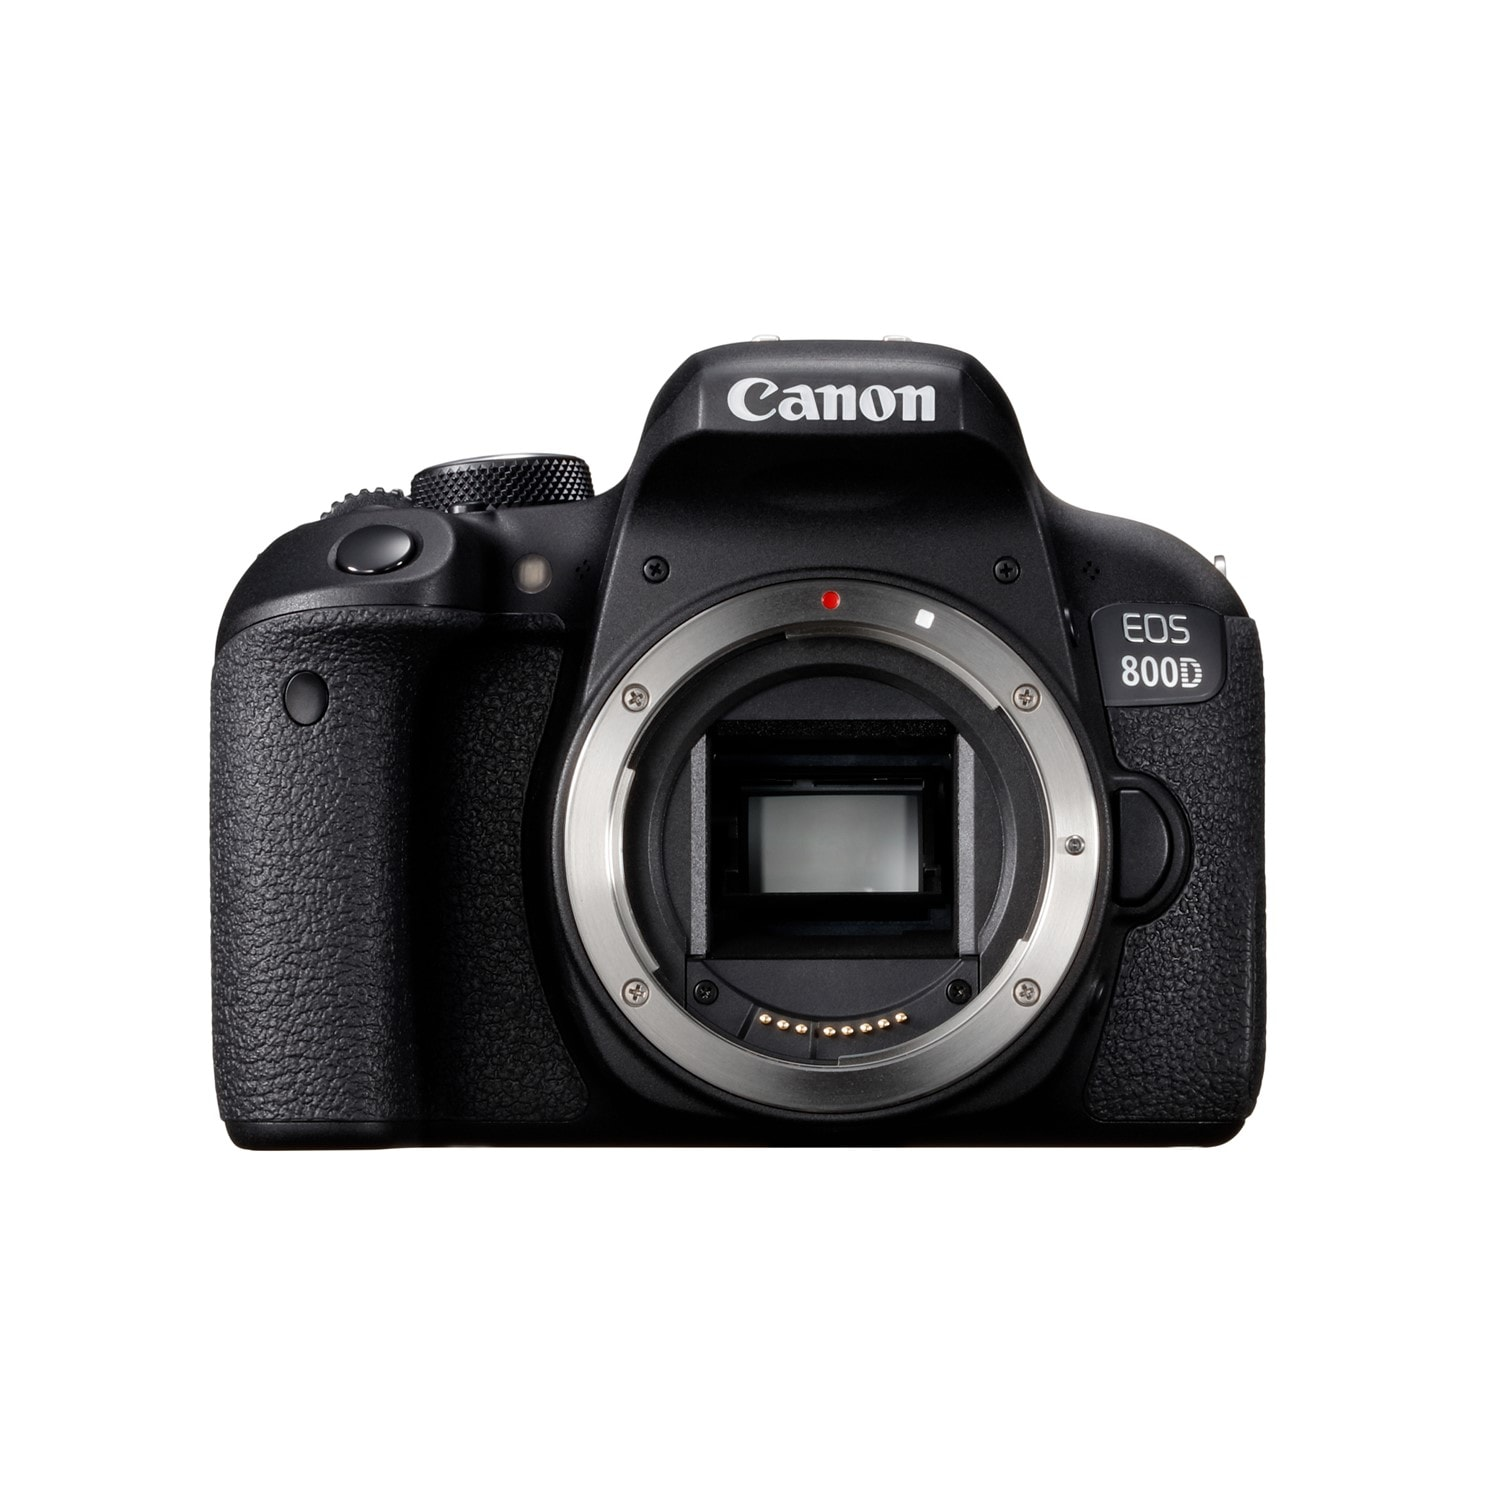 Canon EOS 800D 24 Megapixel Digital SLR Camera Body Only